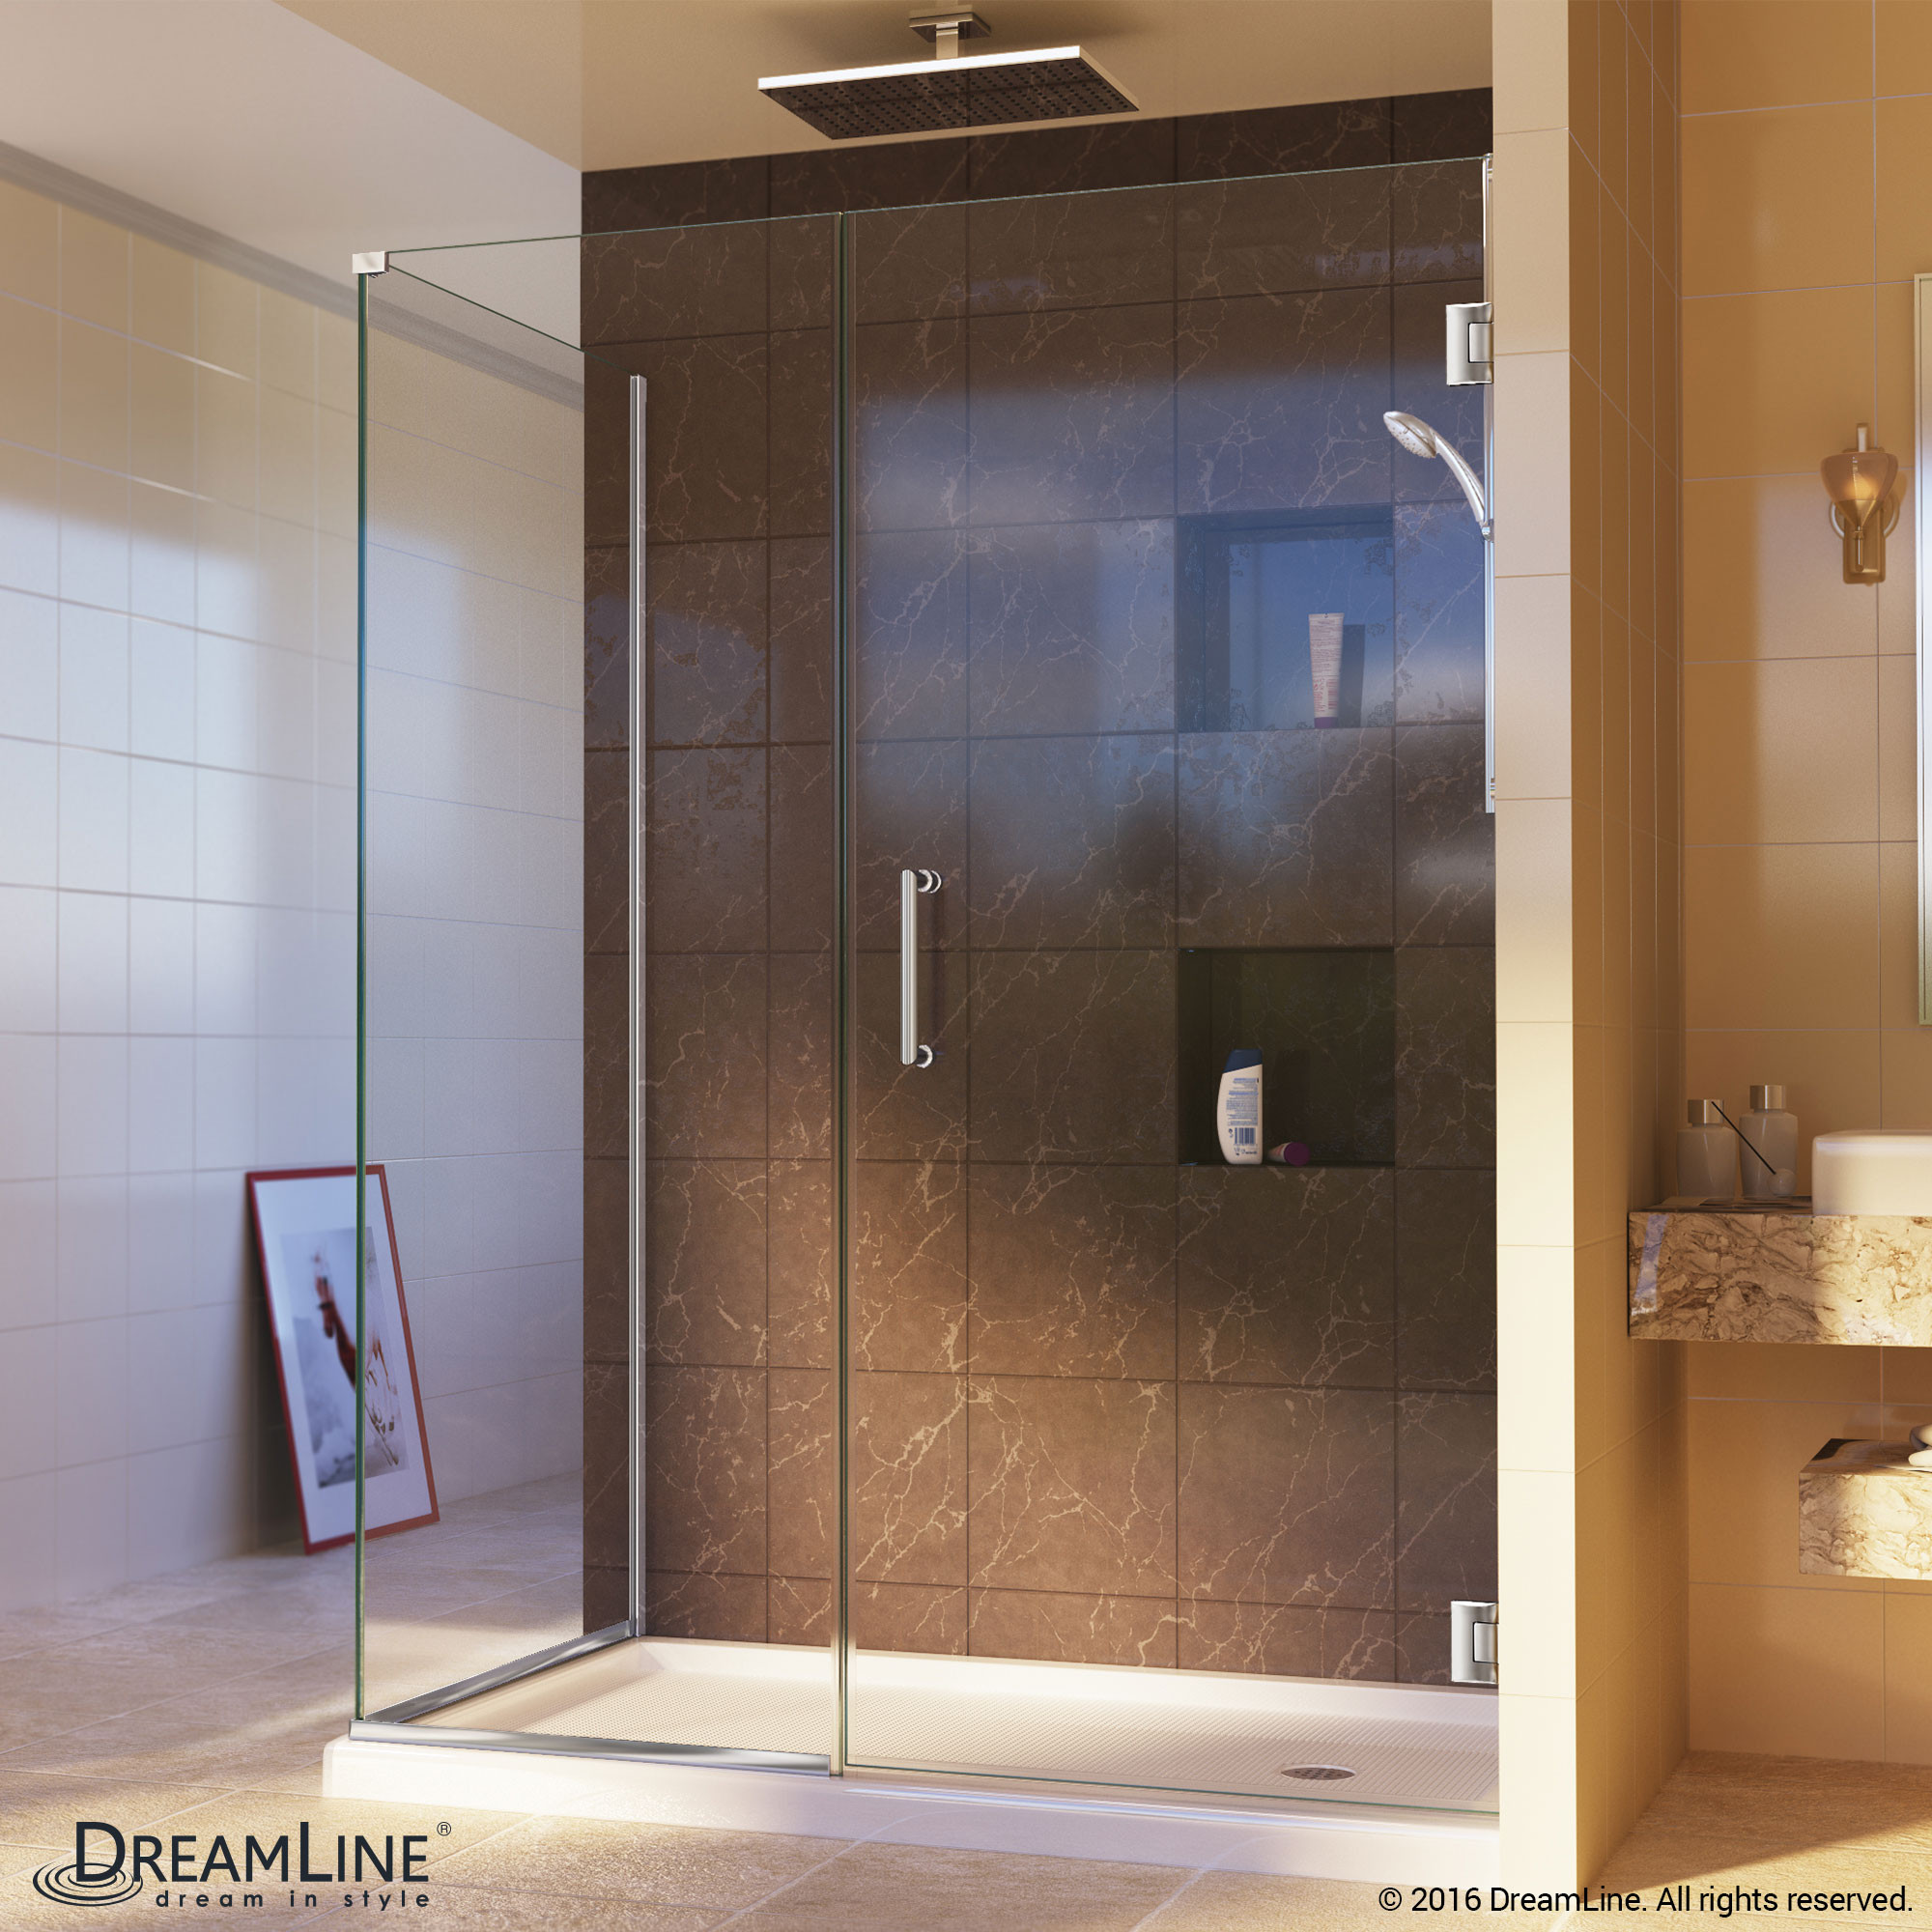 DreamLine SHEN-24305340-01 Unidoor Plus Hinged Shower Enclosure In Chrome Finish Hardware